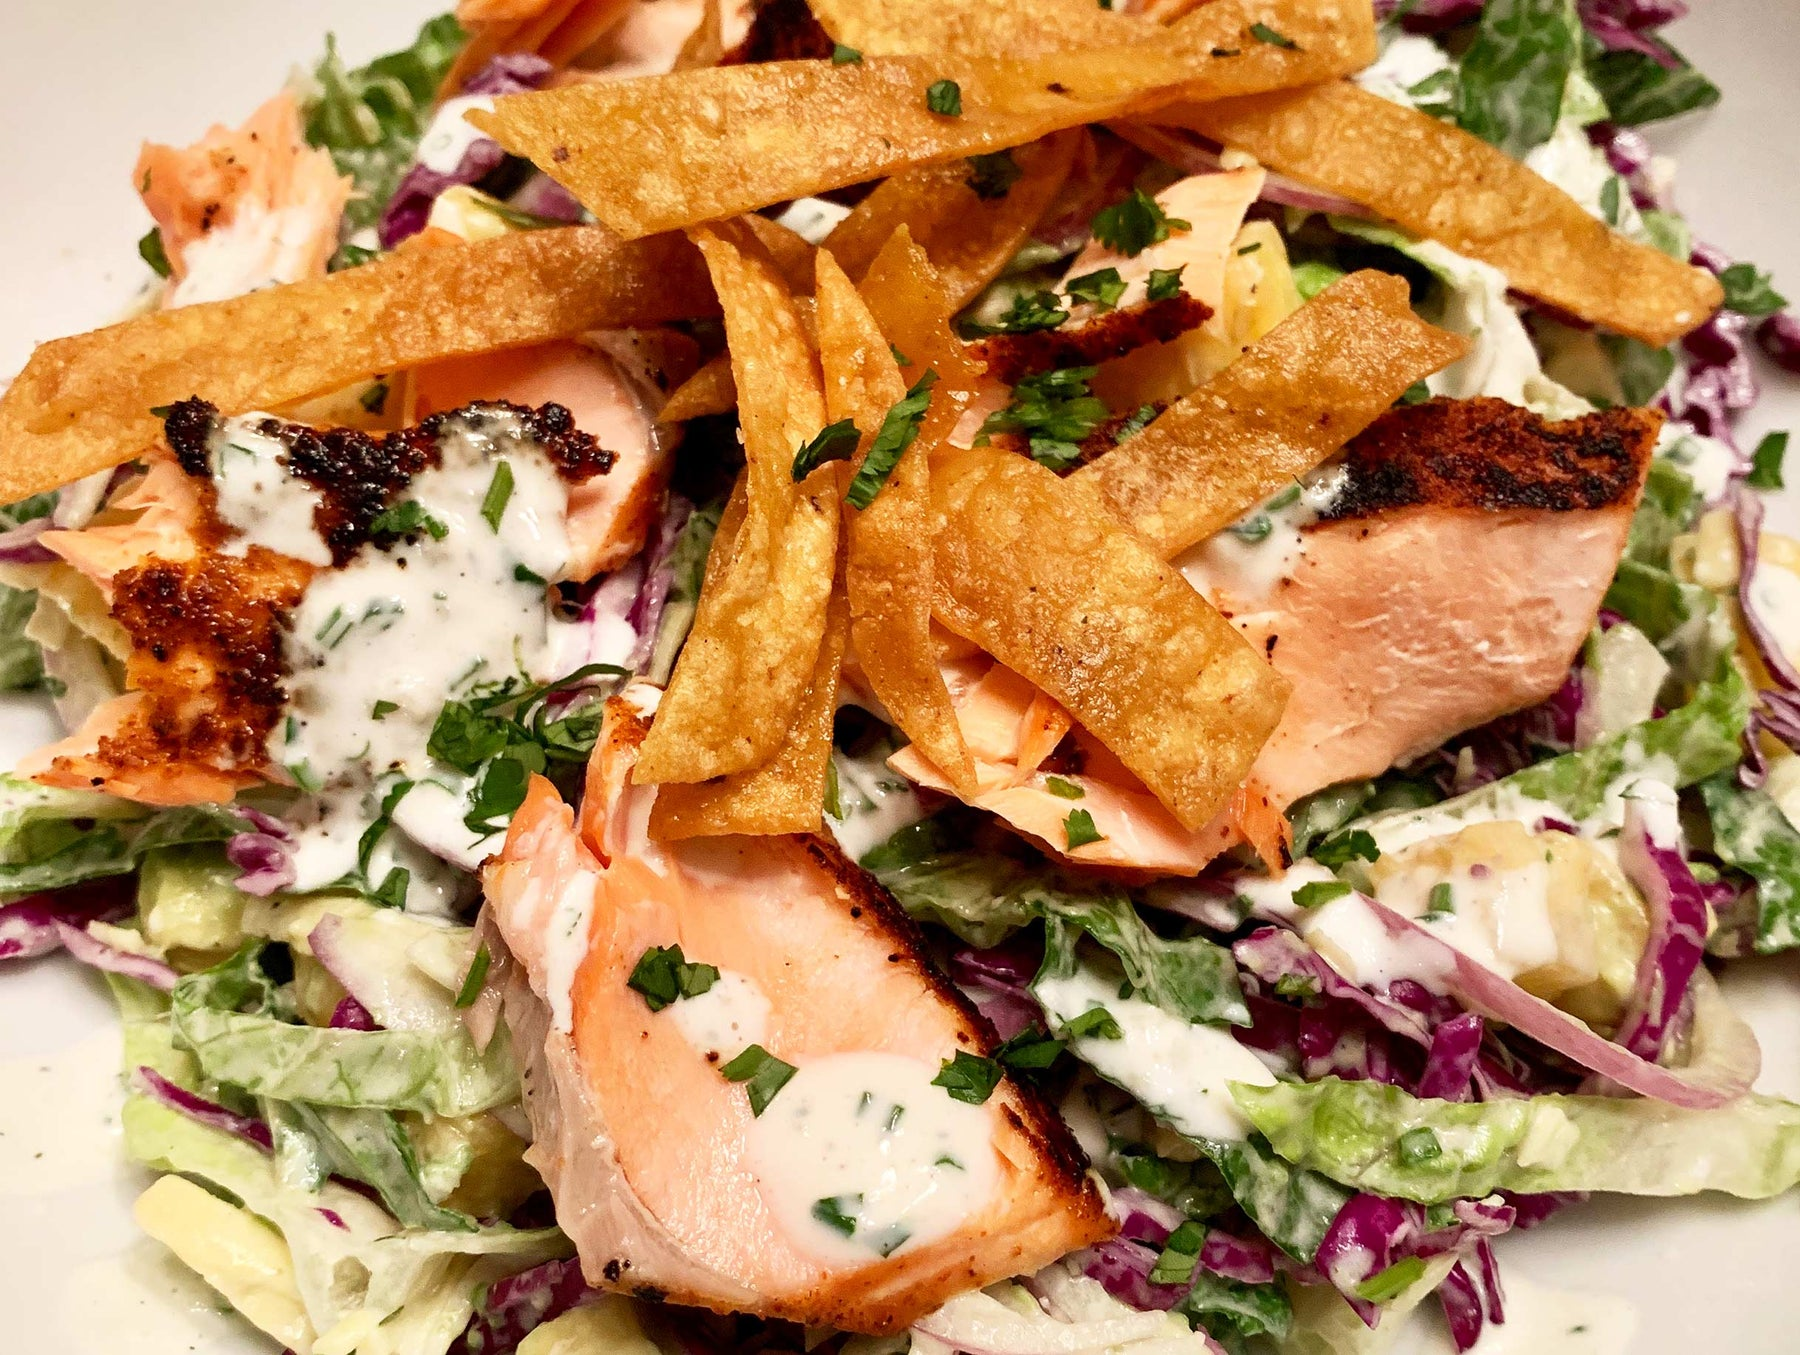 Cali Coast Salad with Grill-Blackened Salmon Recipe